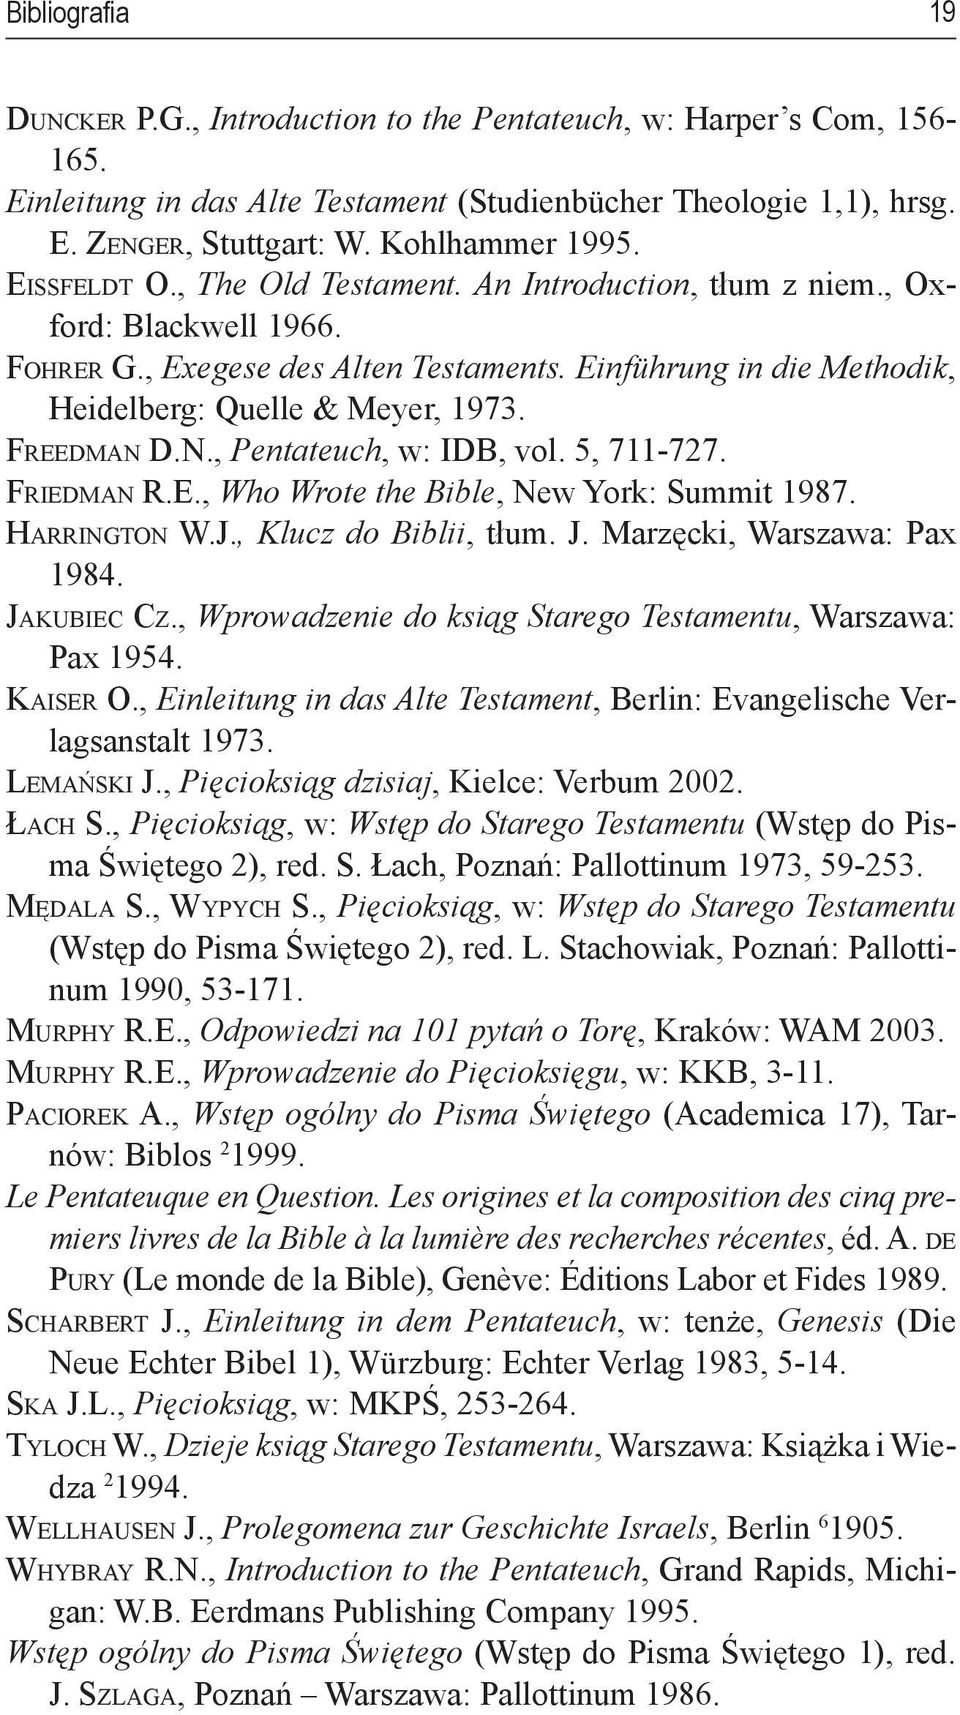 Freedman D.N., Pentateuch, w: IDB, vol. 5, 711-727. Friedman R.E., Who Wrote the Bible, New York: Summit 1987. Harrington W.J., Klucz do Biblii, tłum. J. Marzęcki, Warszawa: Pax 1984. Jakubiec Cz.